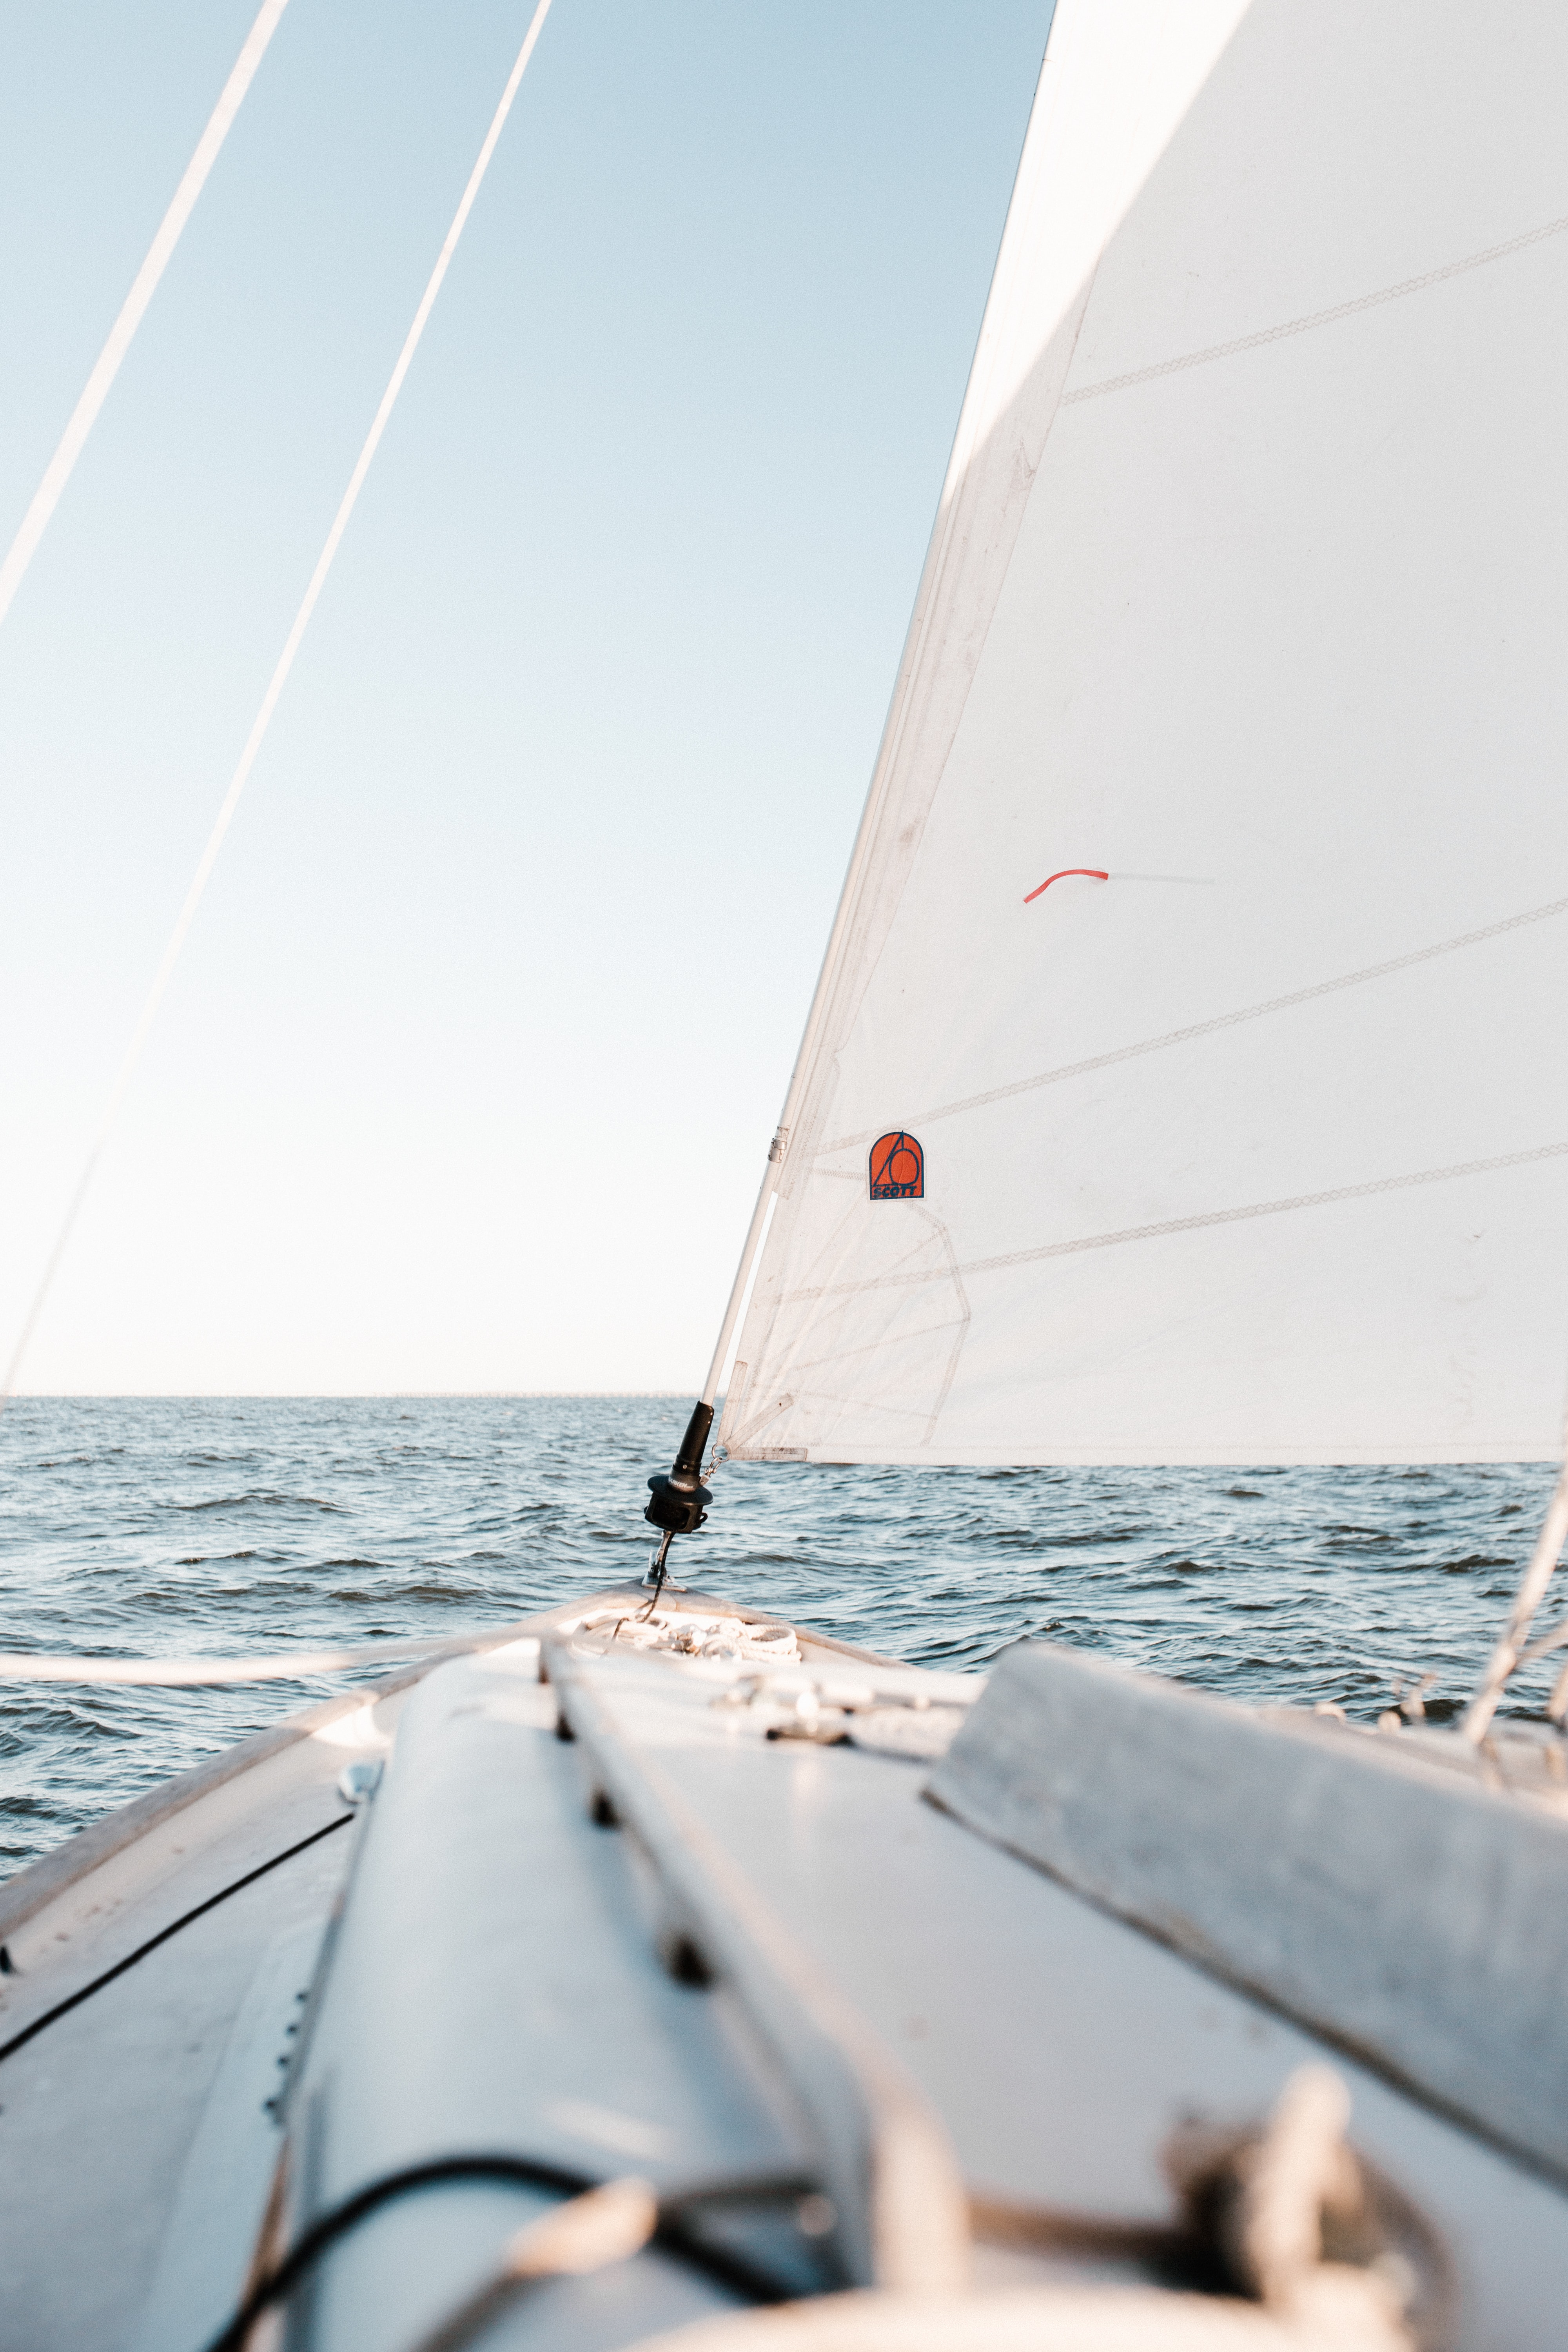 A view from a sailboat on a choppy sea and the clear sky above